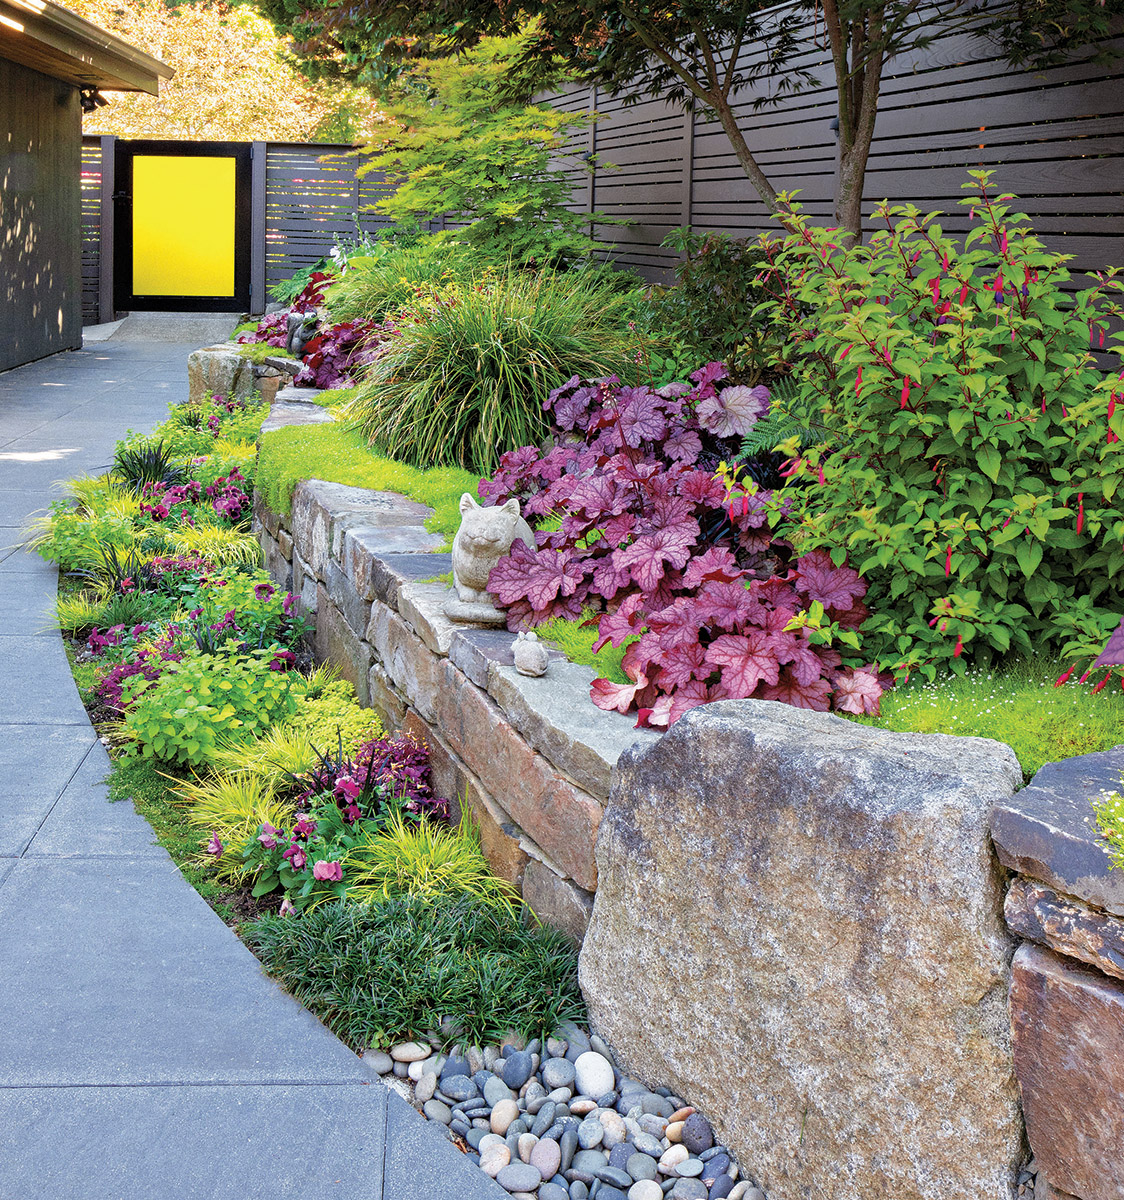 Chartreuse can unite a planting by being the main theme of the area. Picking up on the yellow of the door, the chartreuse plants here create a vibrancy to the bed that the area needs, given the dark and gray hardscape. Using the yellow of the door throughout the bed would have been garish, requiring sunglasses of anyone attempting to view it. The numerous pops of purple provide a counterpoint to the chartreuse and a connection to the house and the fence.